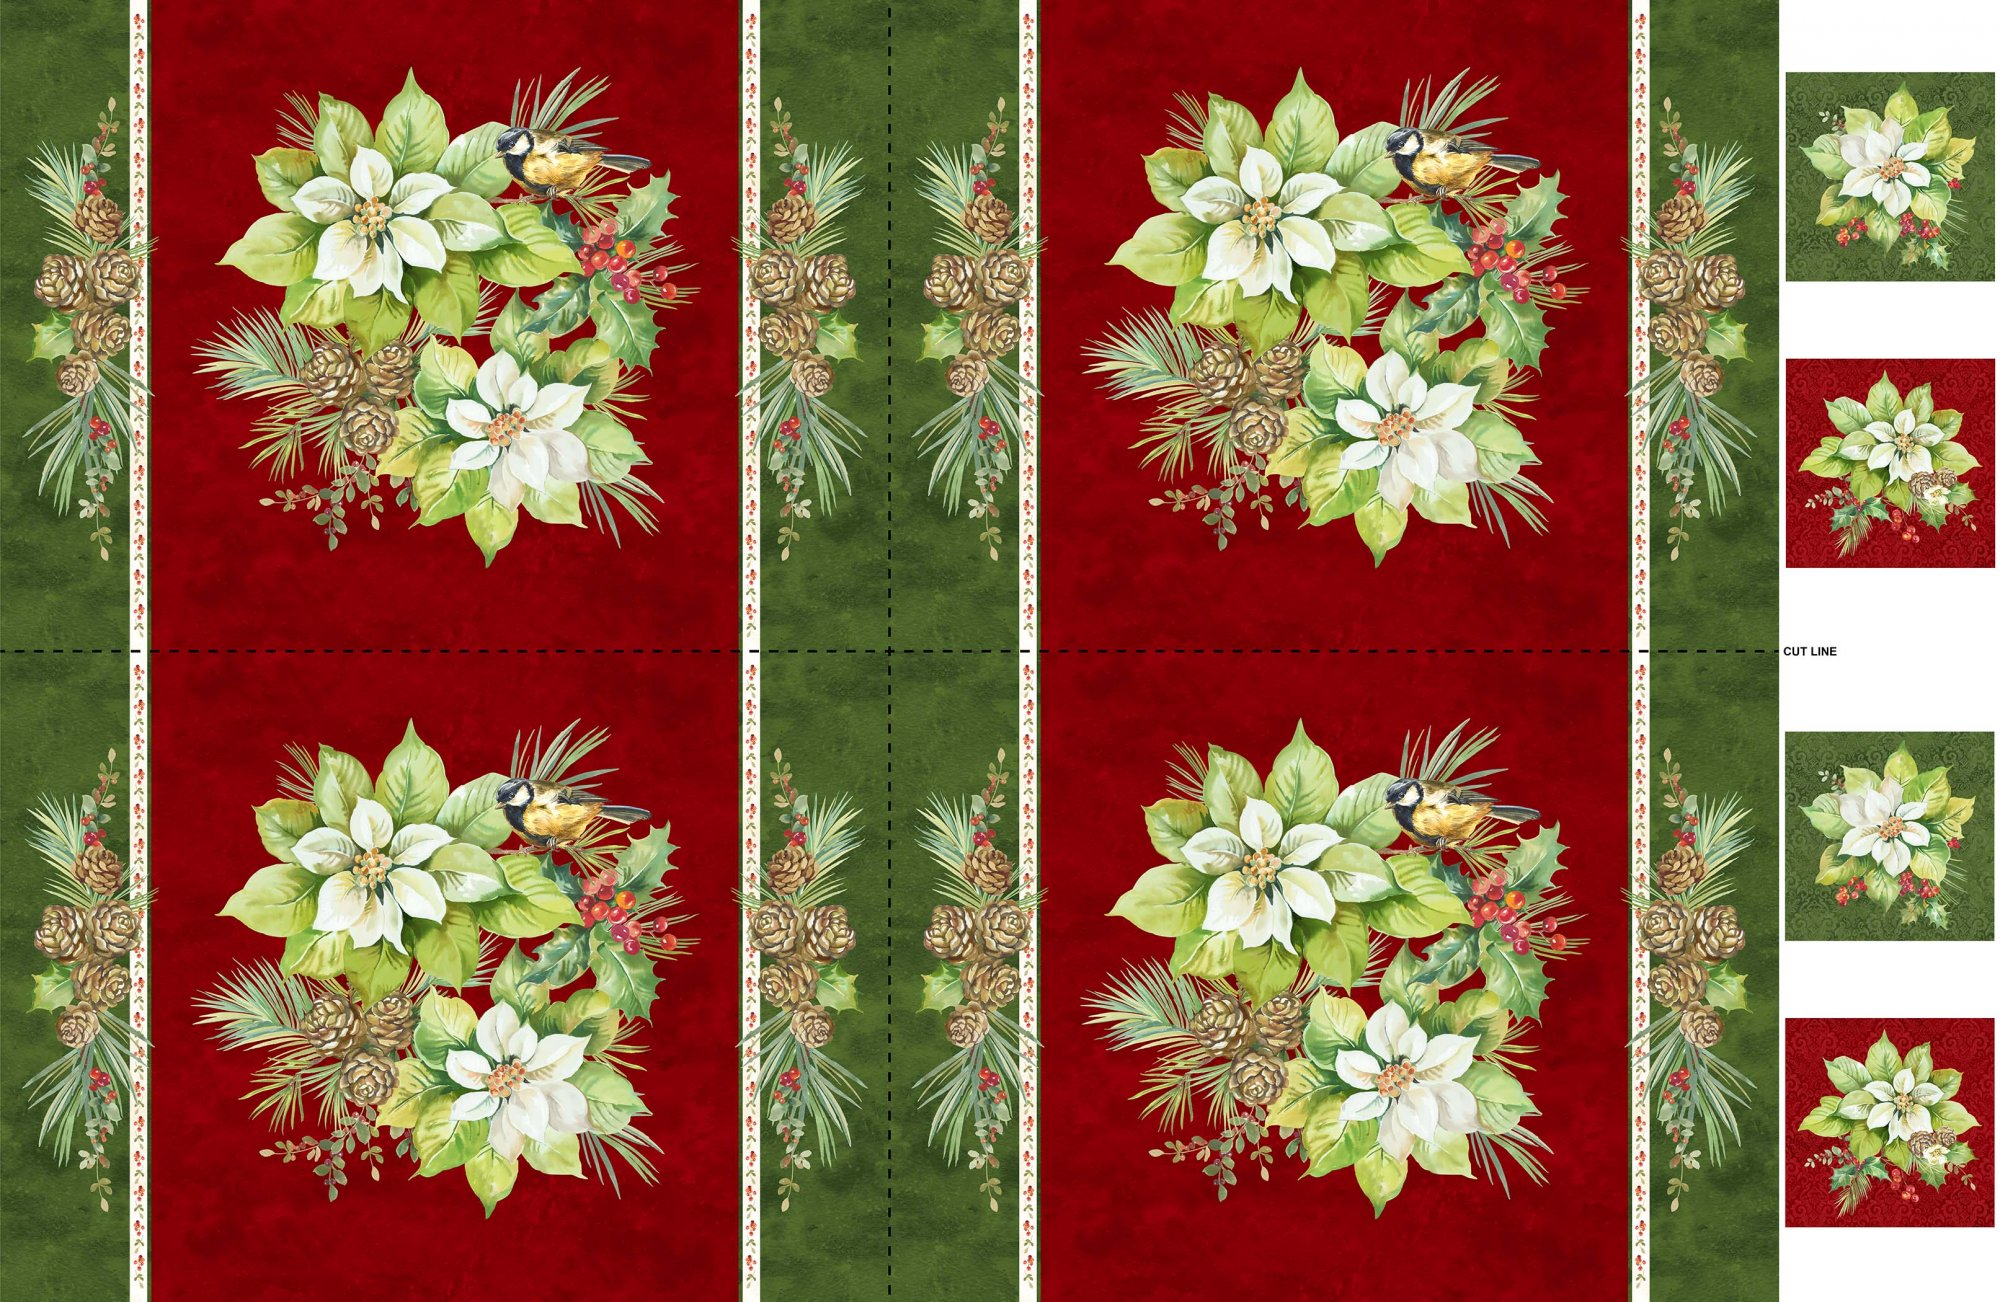 Deborah Edwards Deck the Halls Placemat Panel